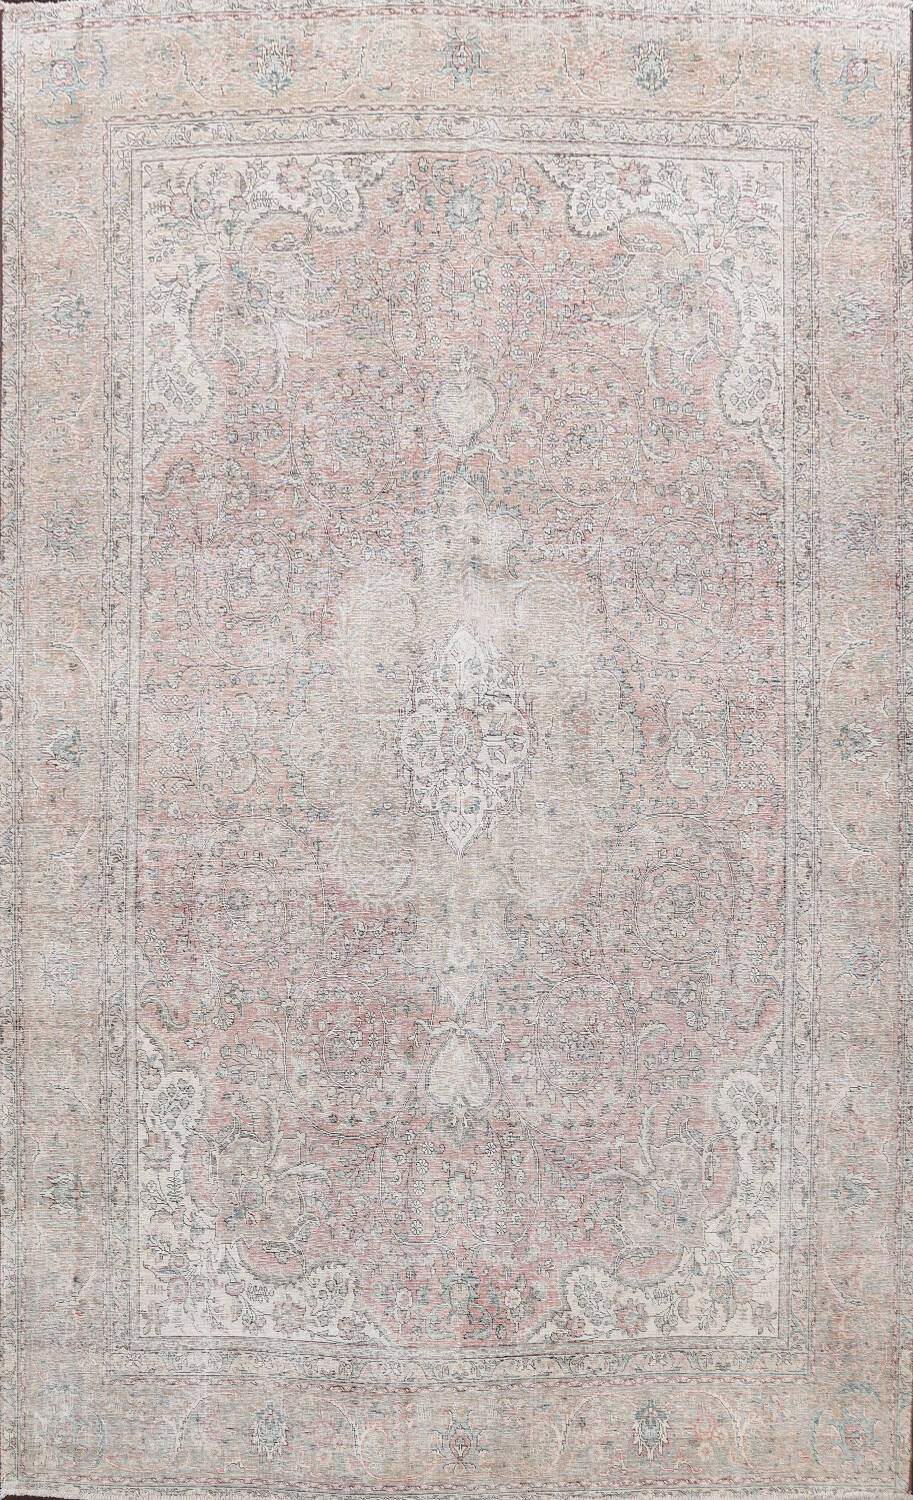 Antique Muted Distressed Tabriz Persian Area Rug 10x13 image 1